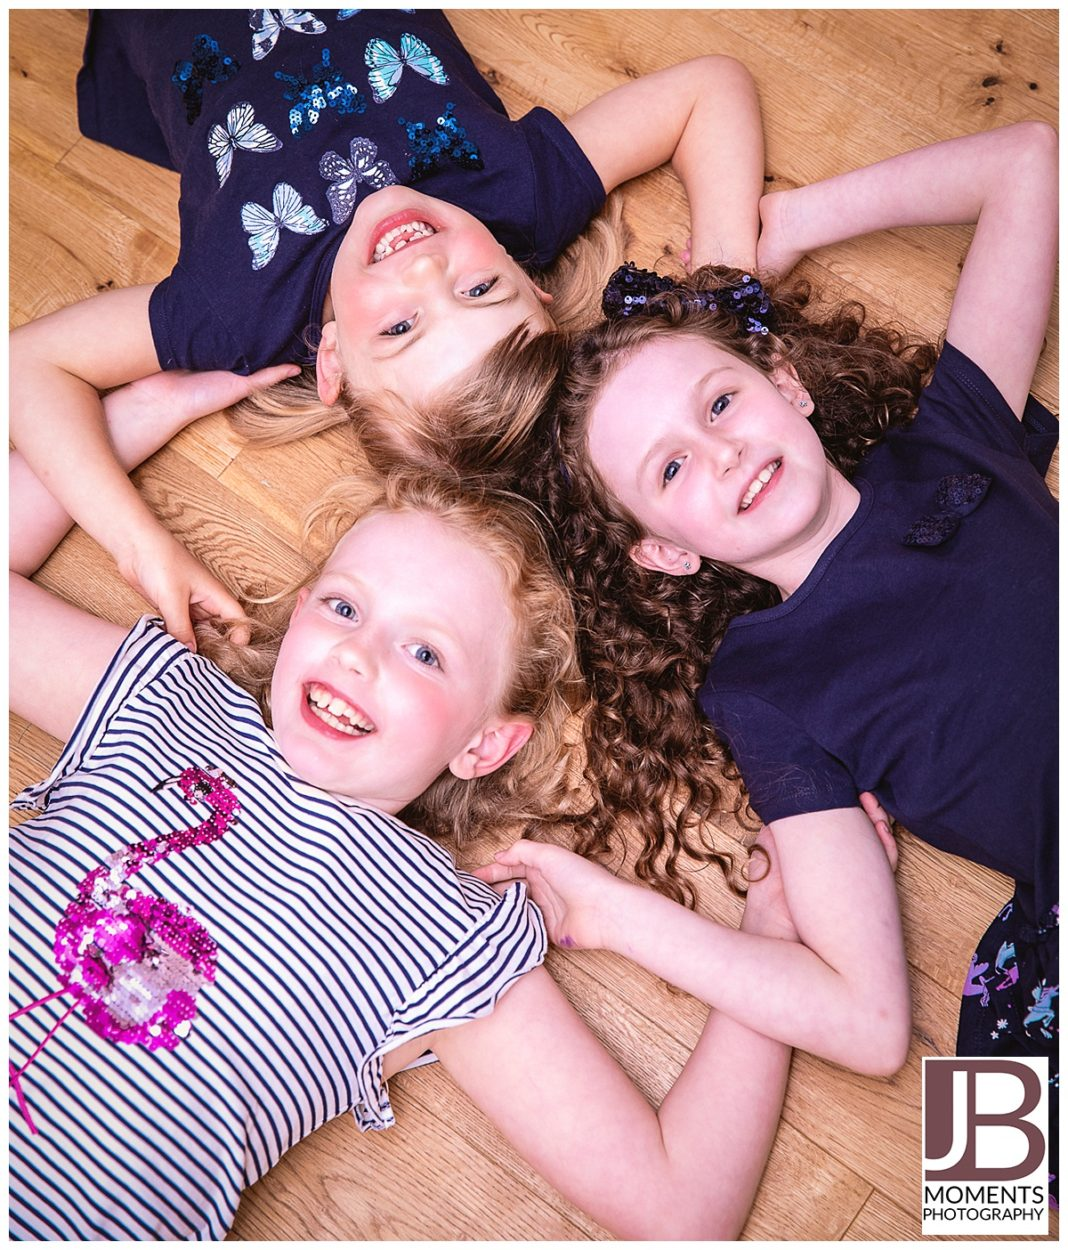 JB Moments Photography, Family photographer in Stirling